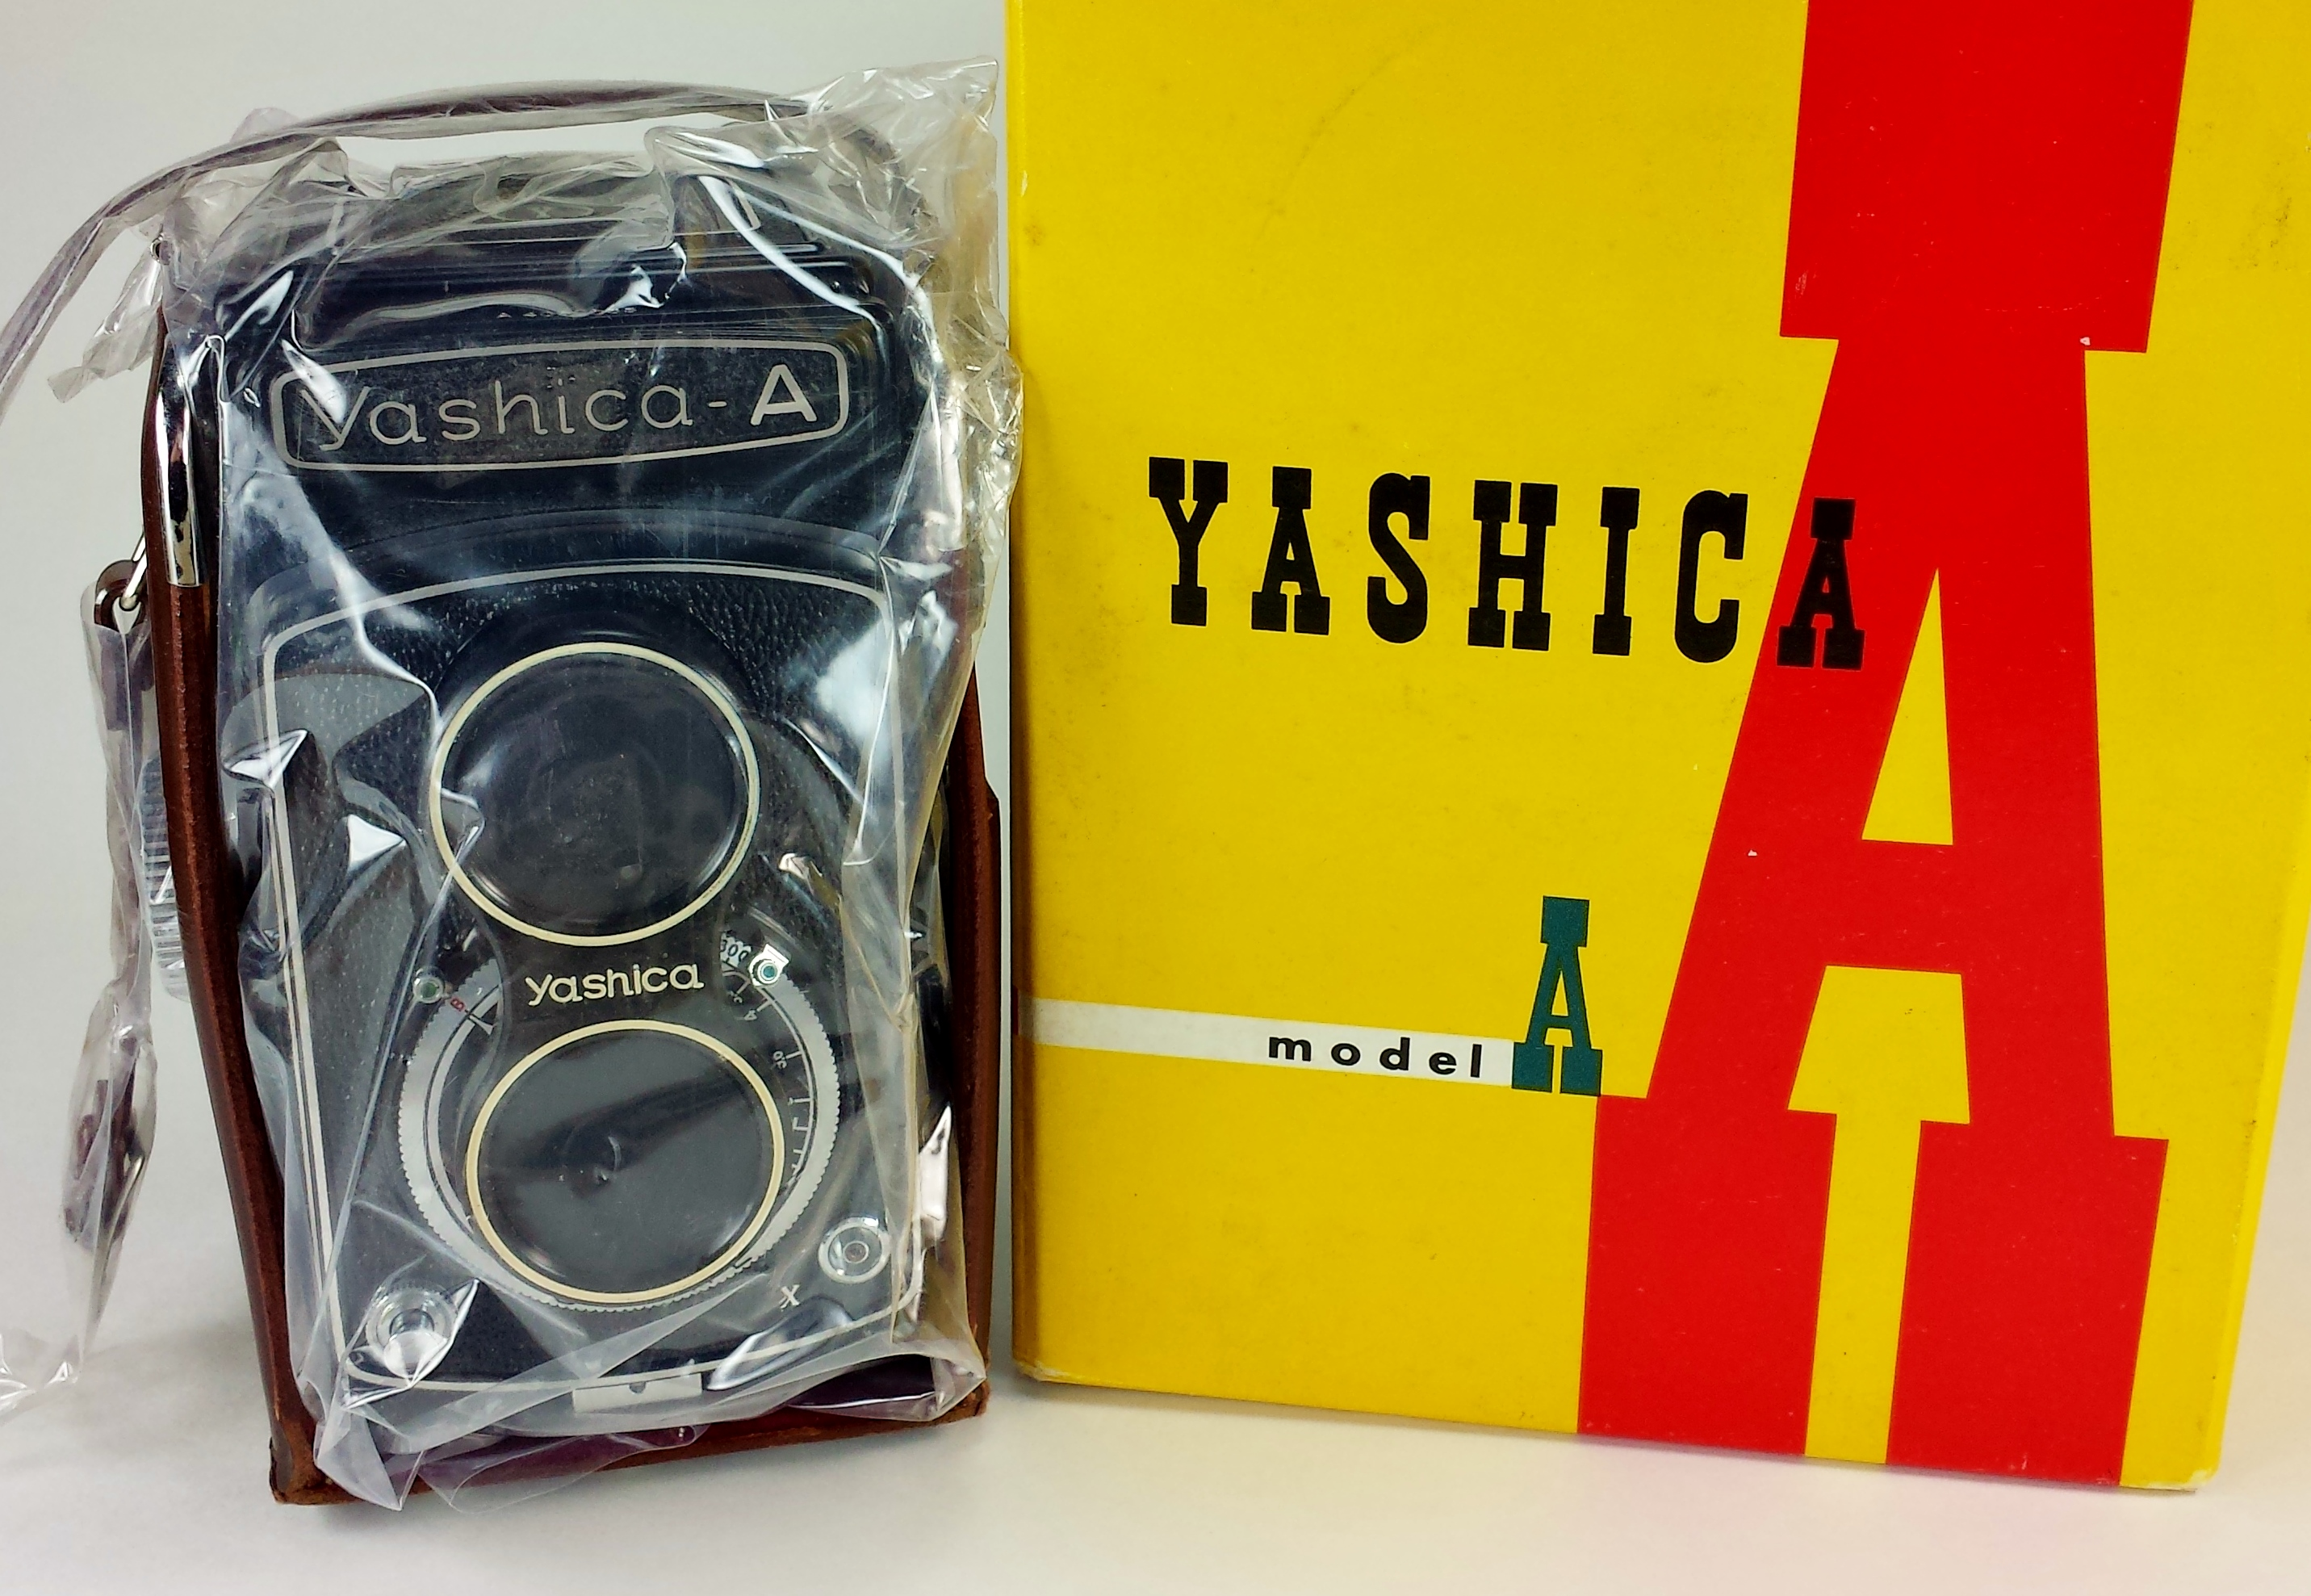 yashica a cam and box